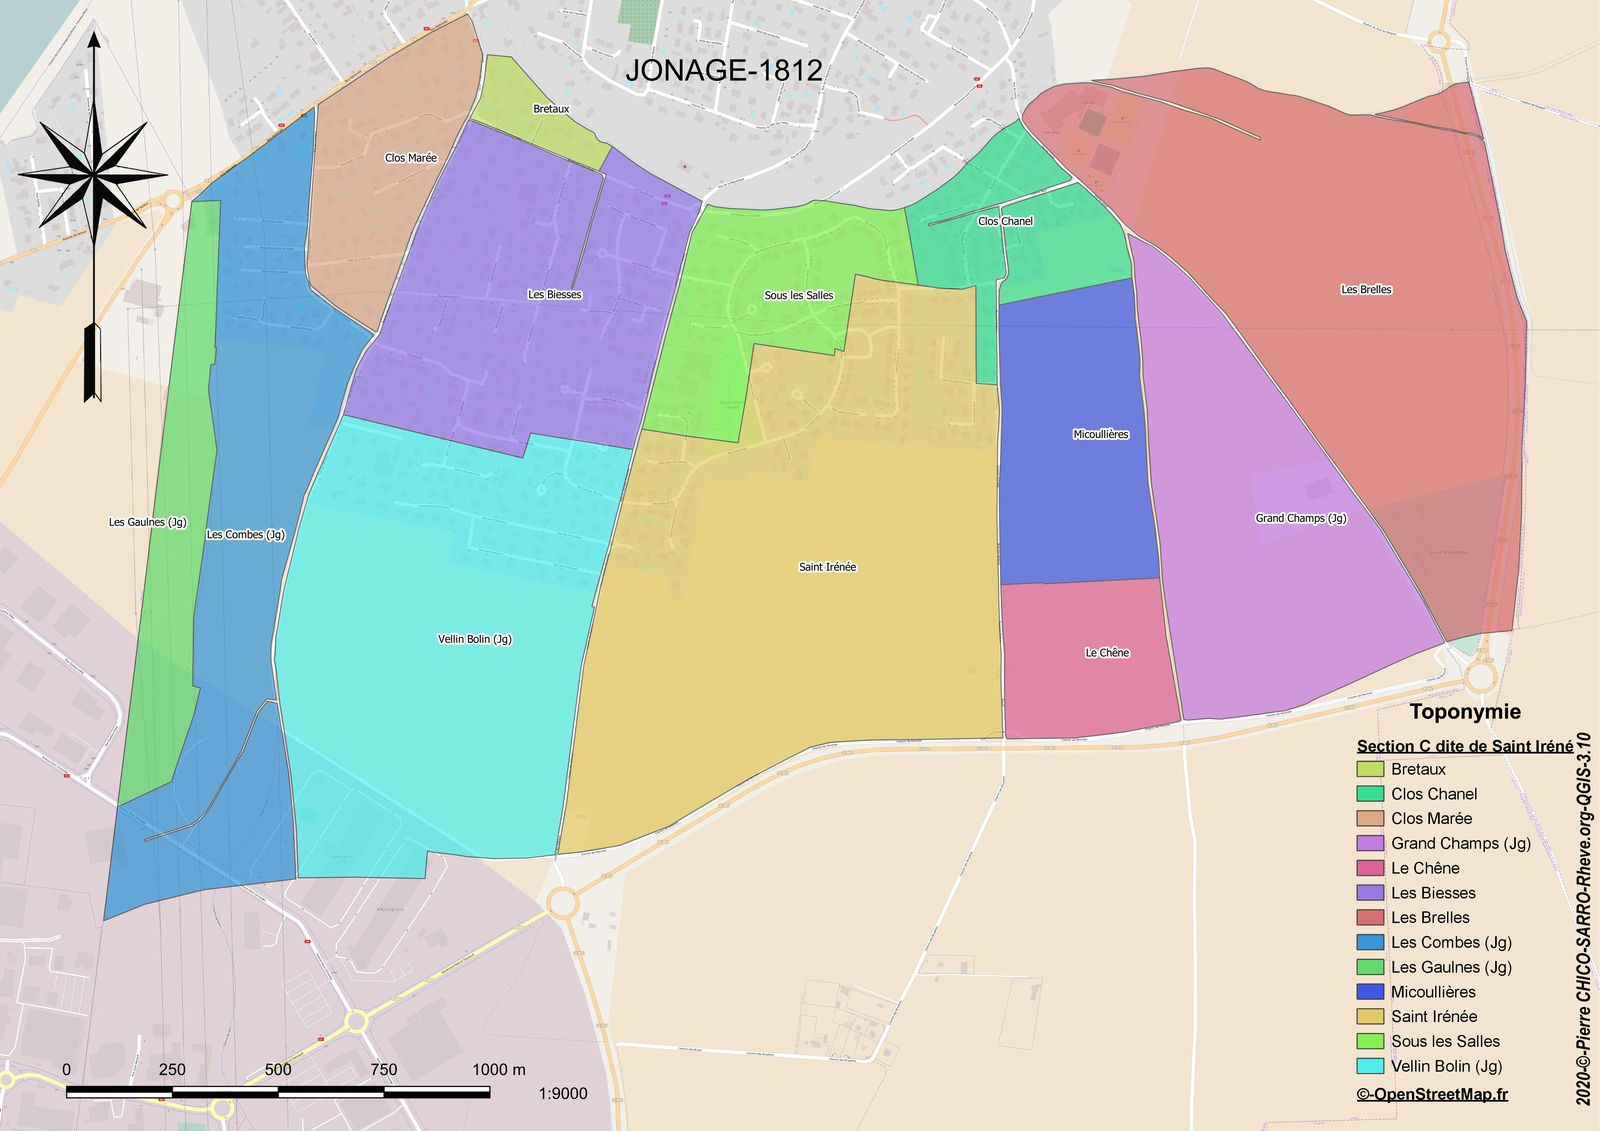 Distribution des toponymes de la Section C dite de Saint-Iréné à Joange en 1812